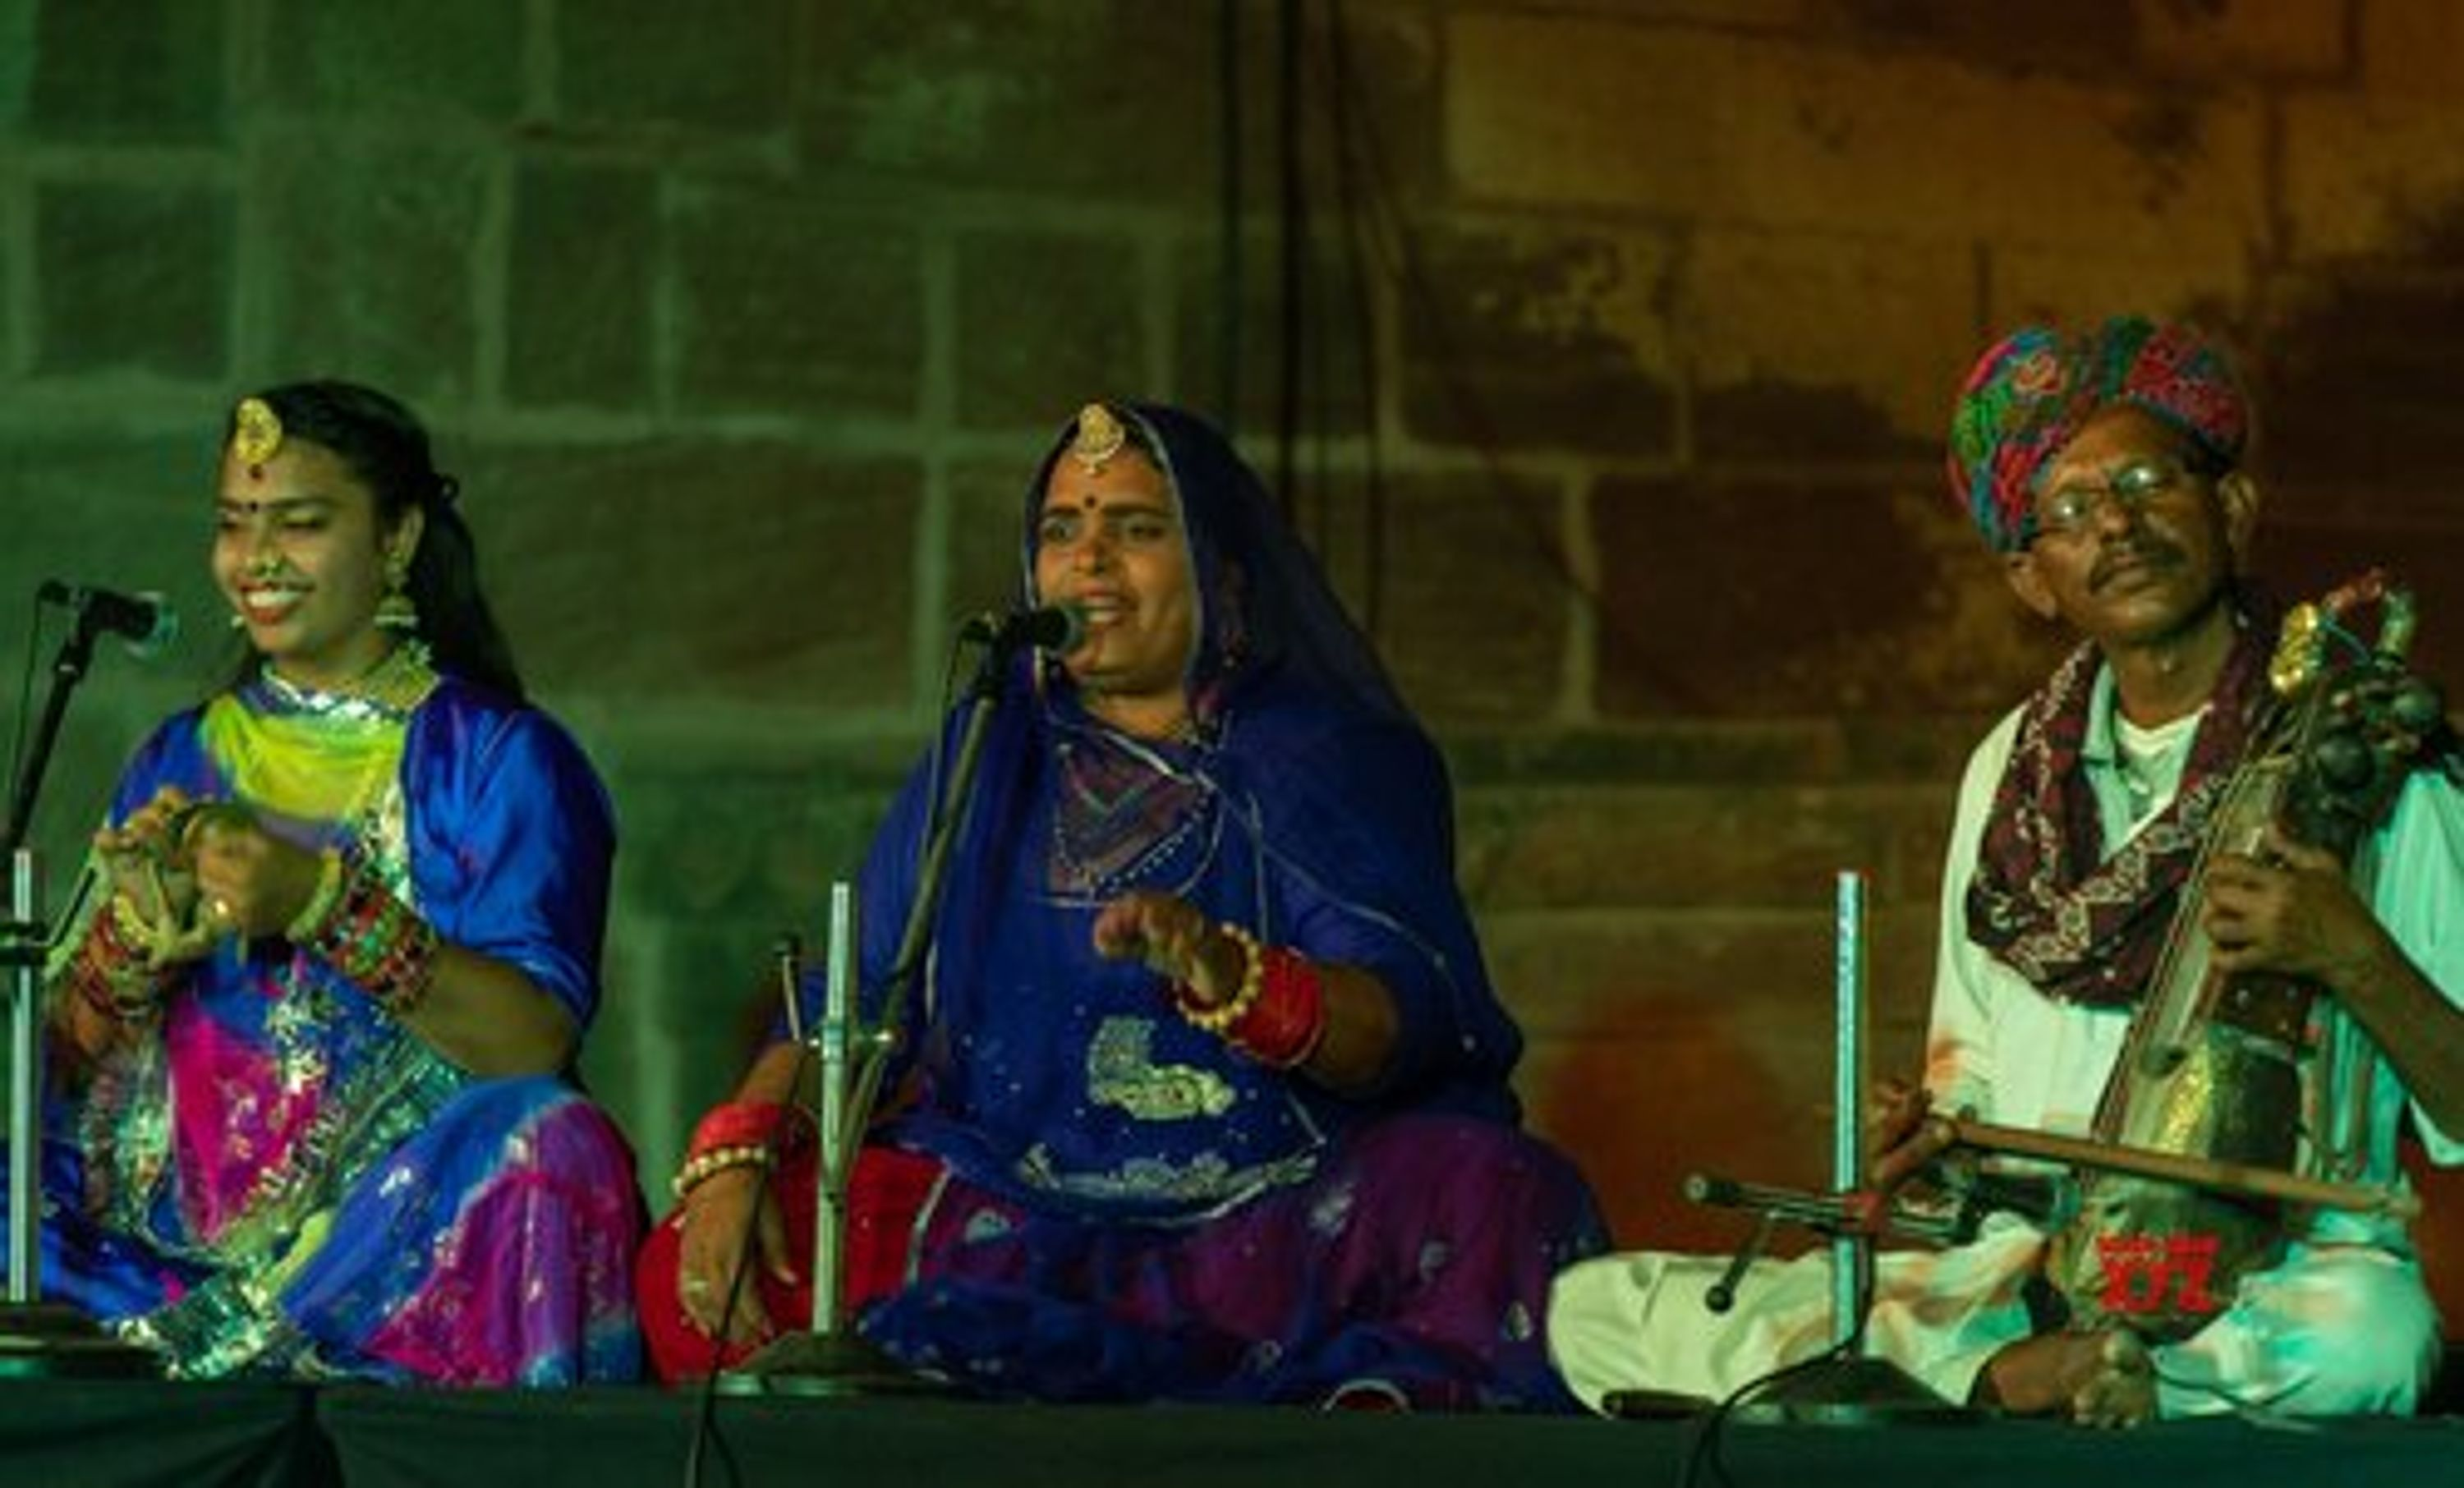 Womanly Voices (of Jodhpur Riff), three musicians sitting and playing